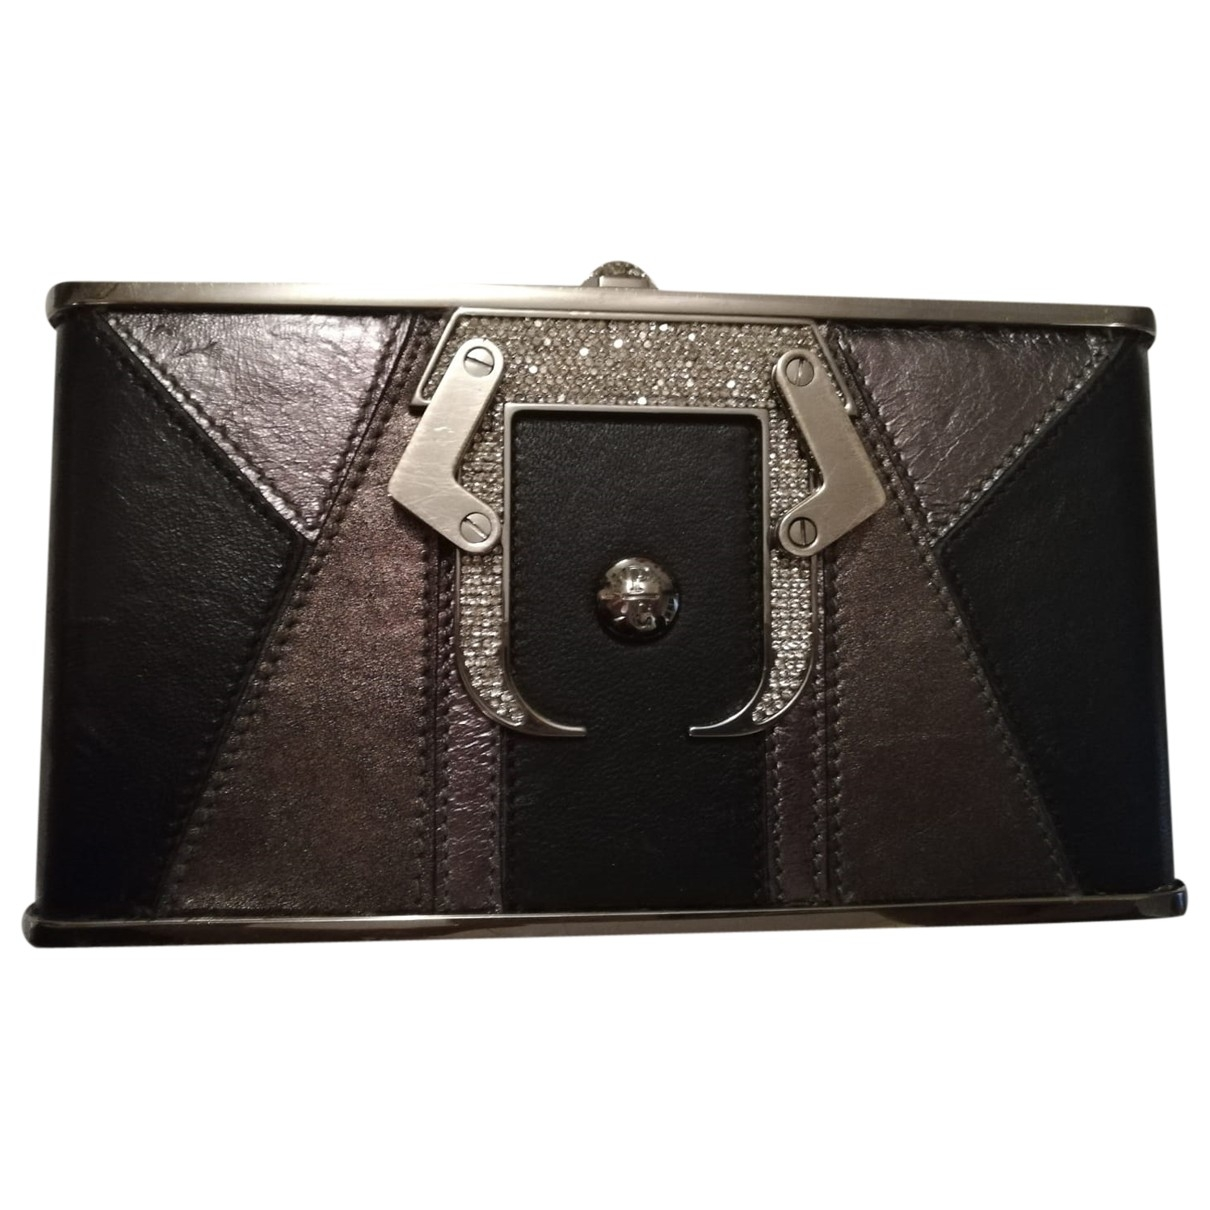 Paula Cademartori \N Anthracite Leather Clutch bag for Women \N